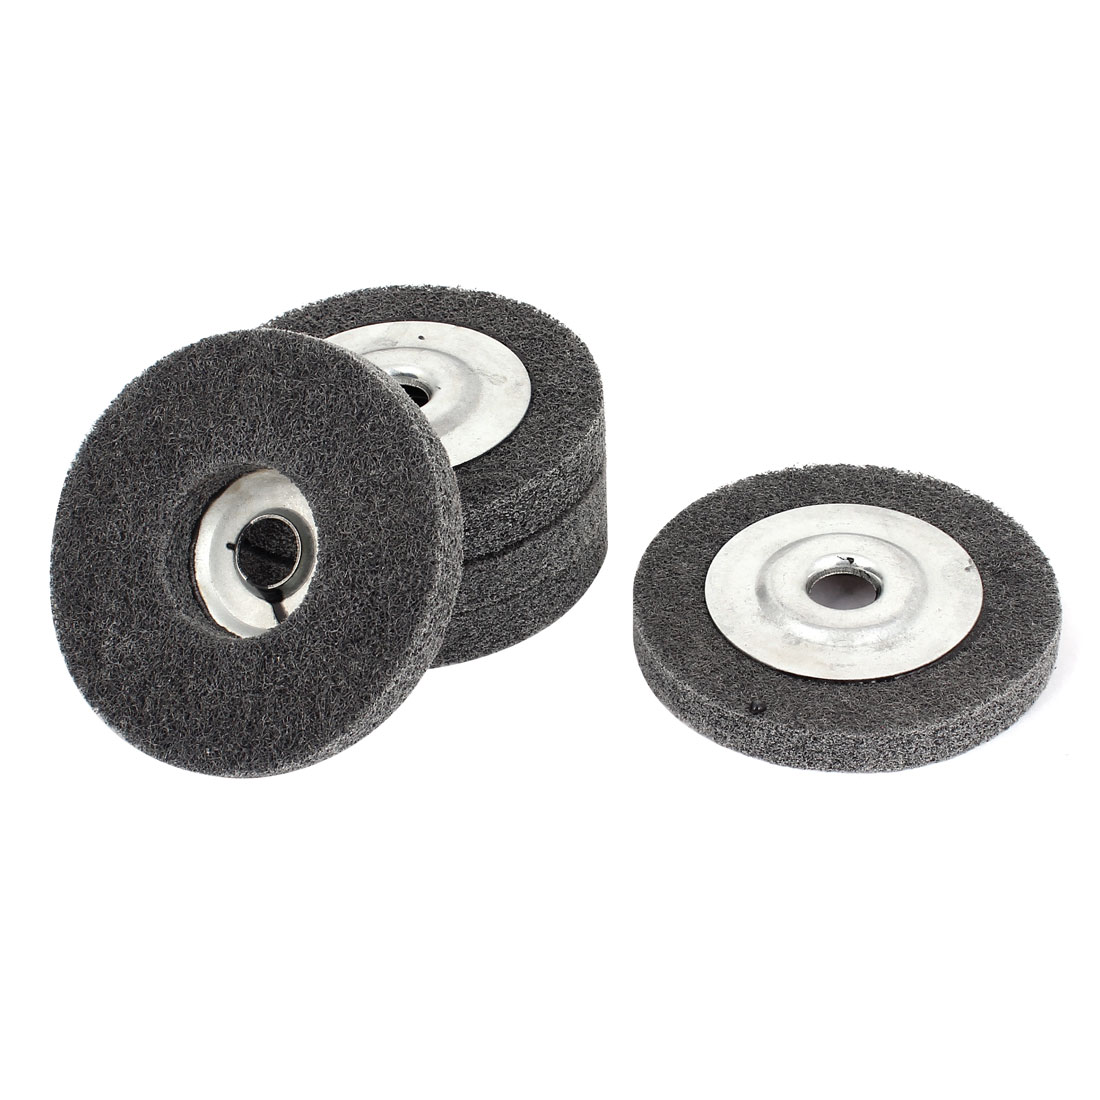 15mm Bore 100mm Dia Nylon Fiber Wheel Abrasive Polishing Buffing Disc Gray 5pcs